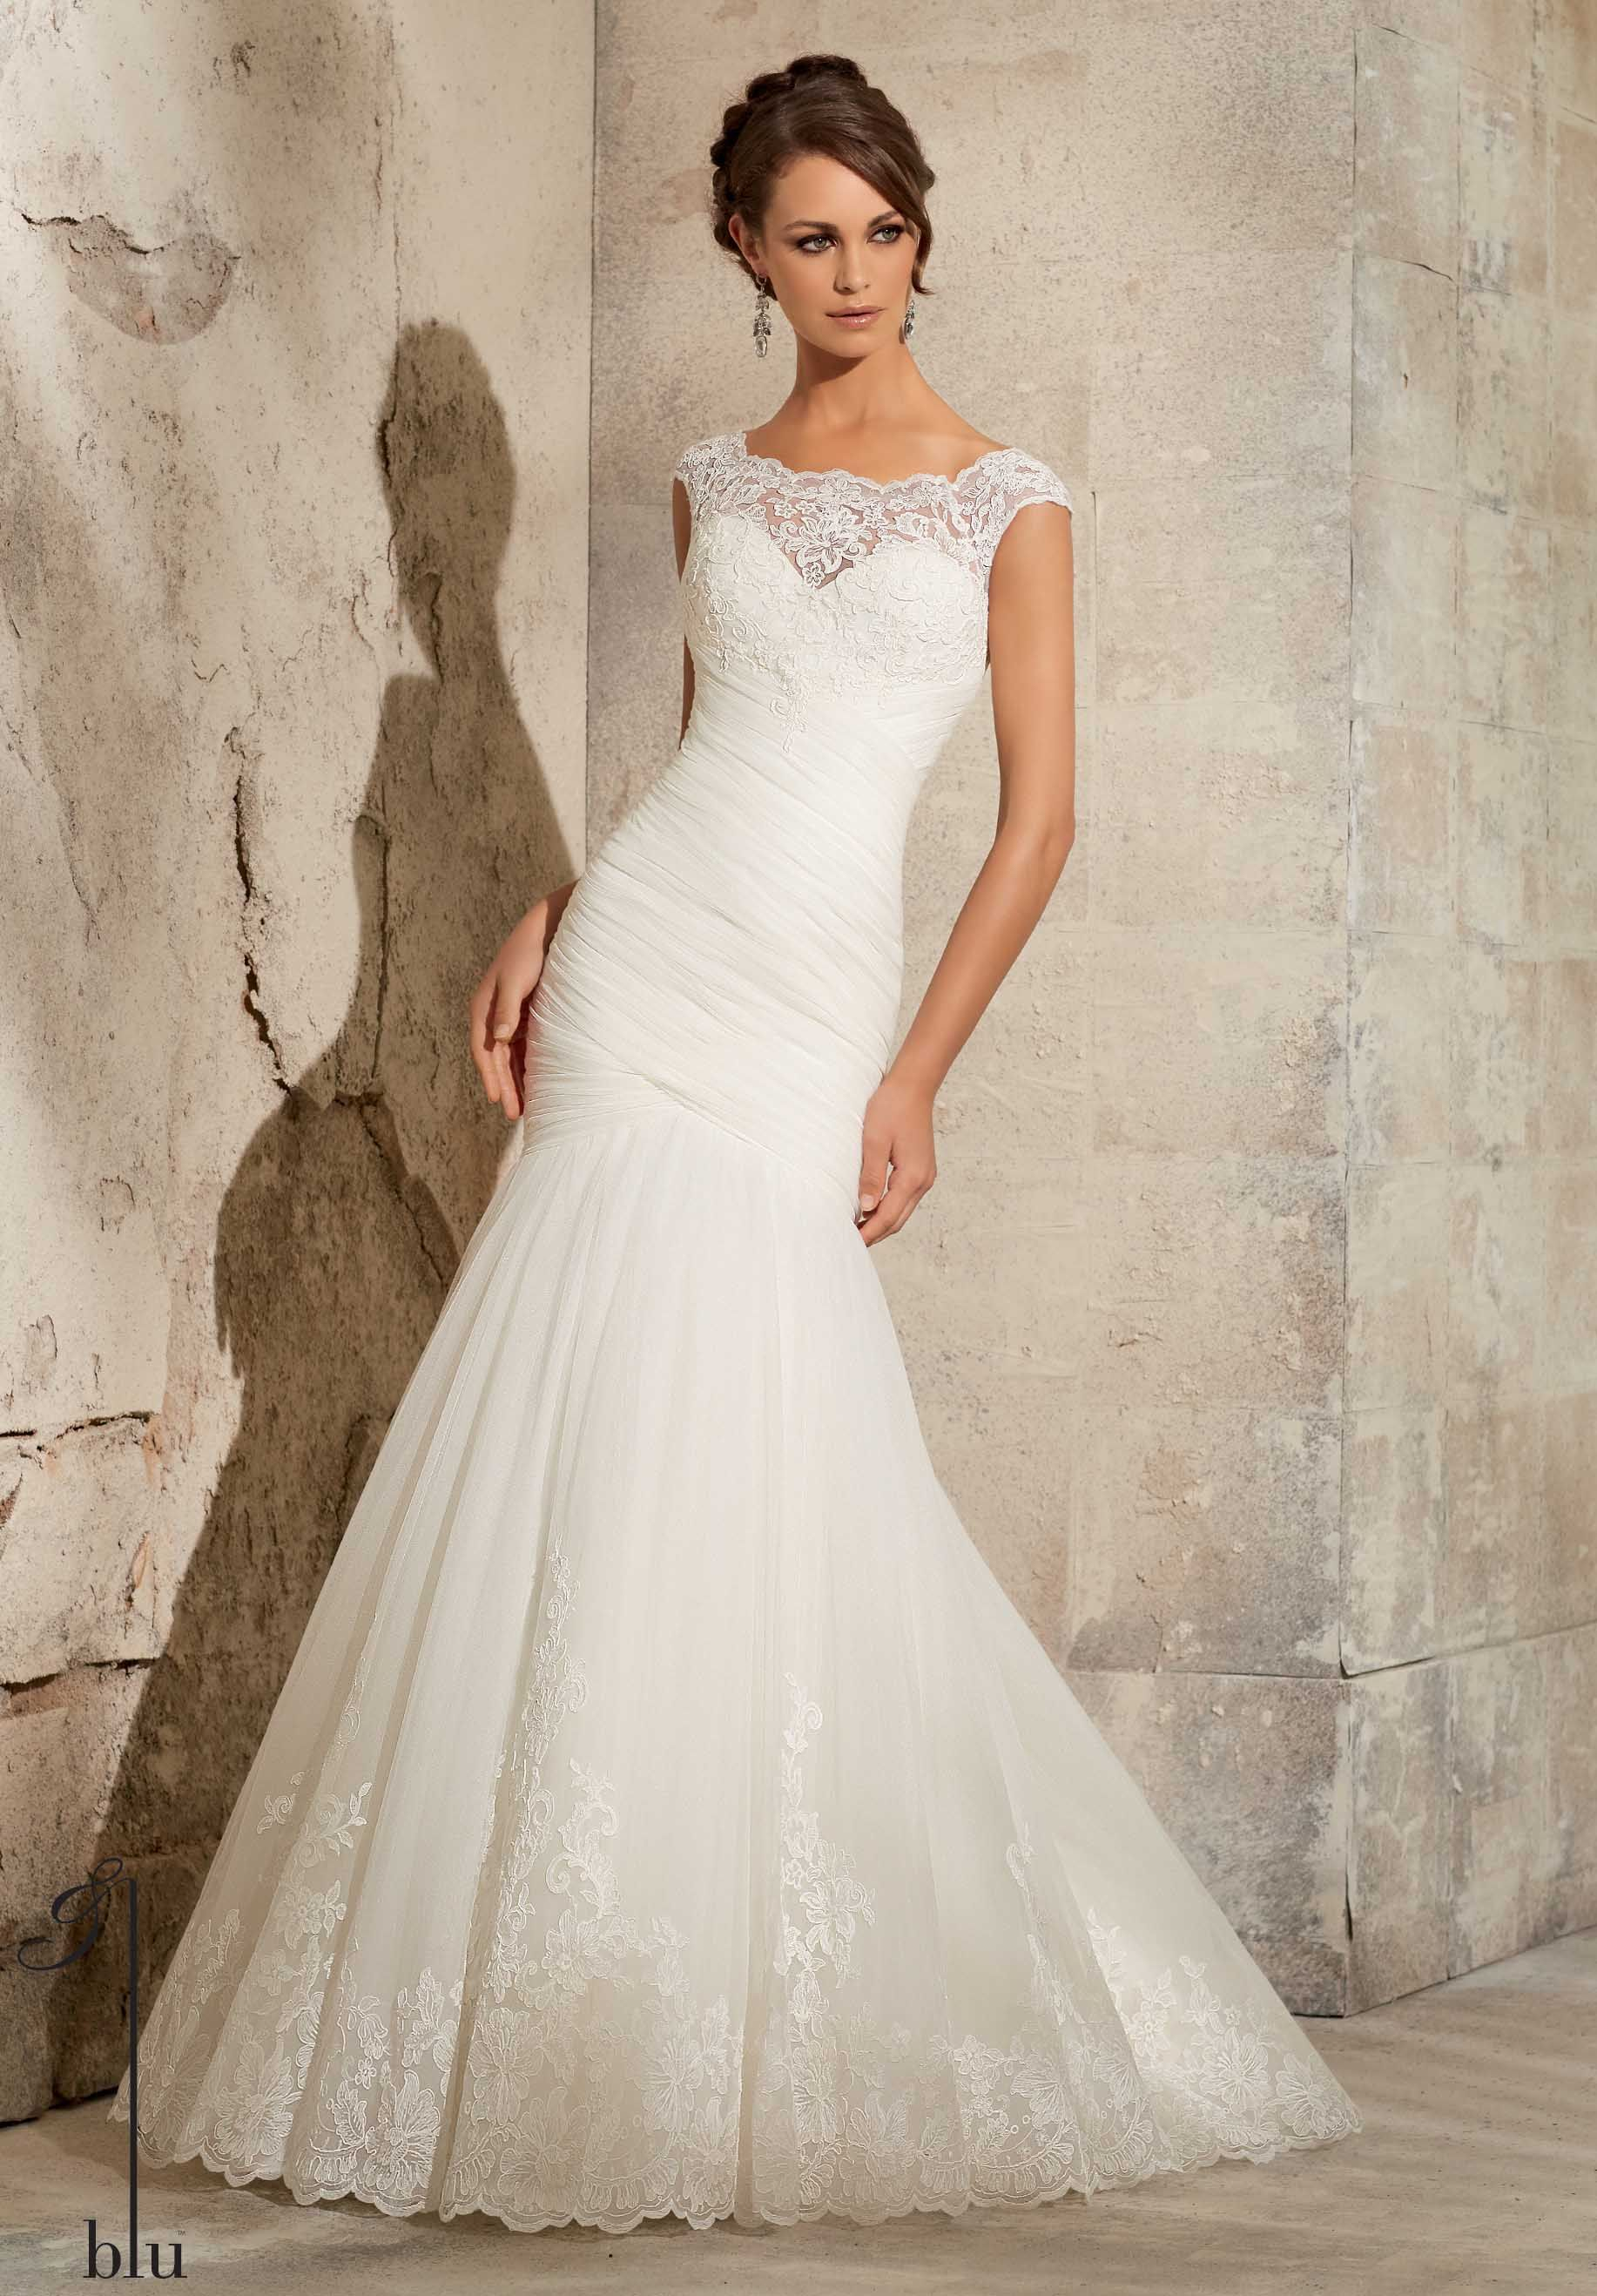 Mori lee by madeline gardner blu collection 2015 mori lee for Mori lee wedding dress prices